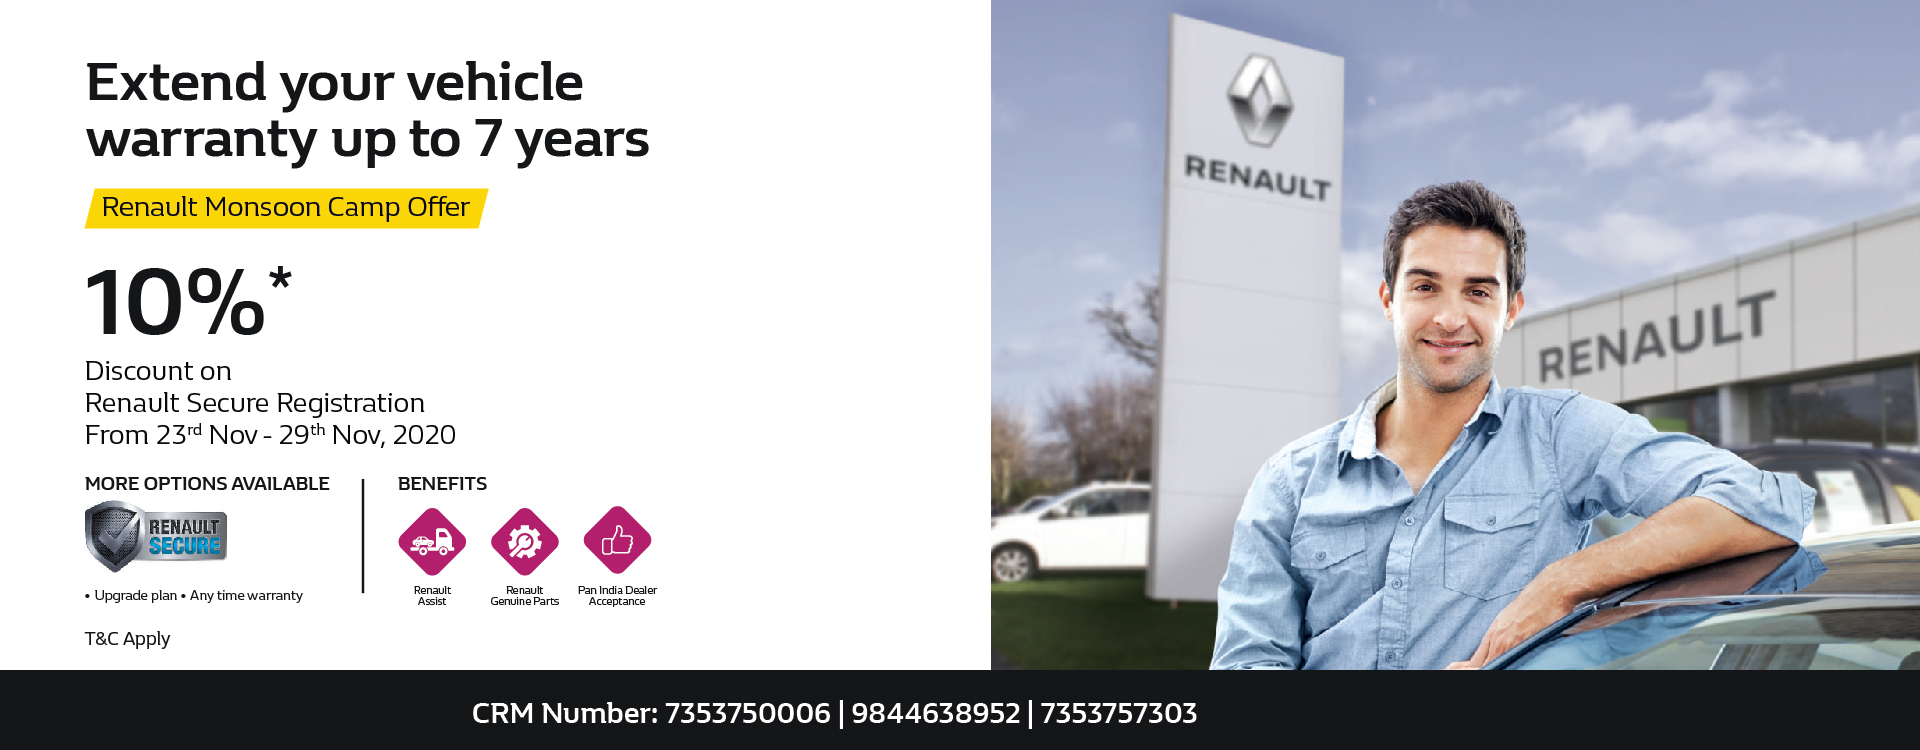 Renault-monsoon-camp